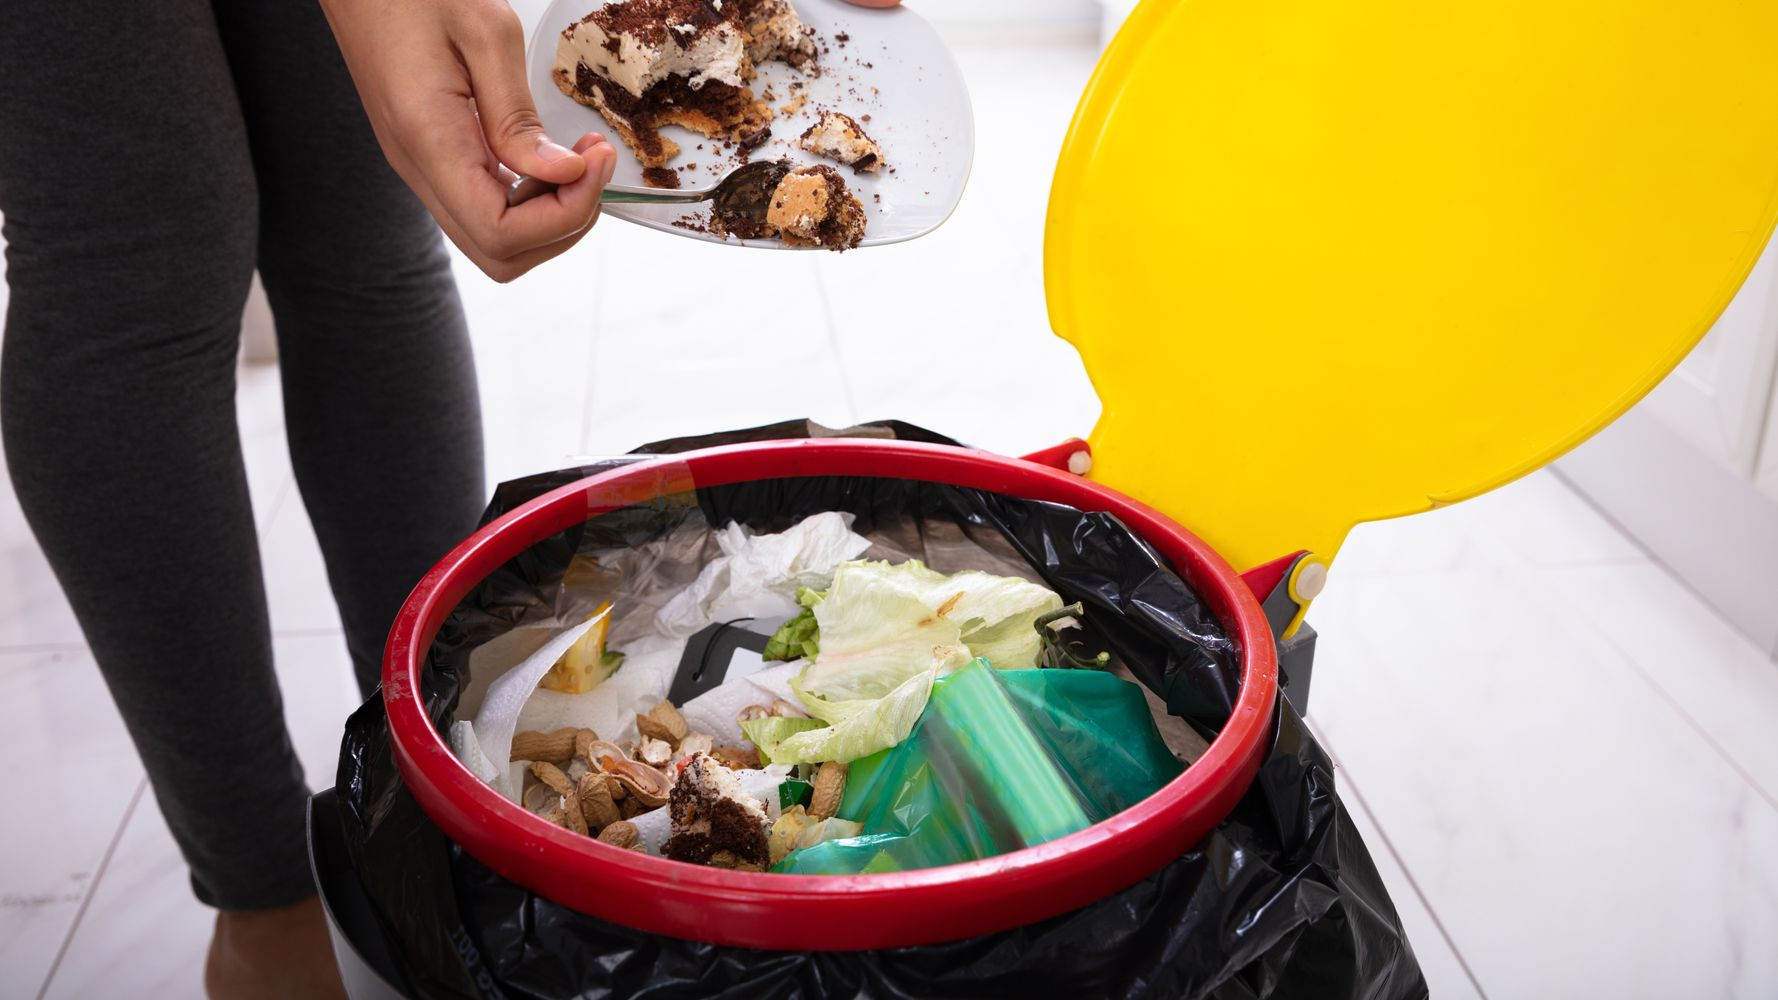 Chucking Compostable Packaging In Your Food Bin Not As Eco-Friendly